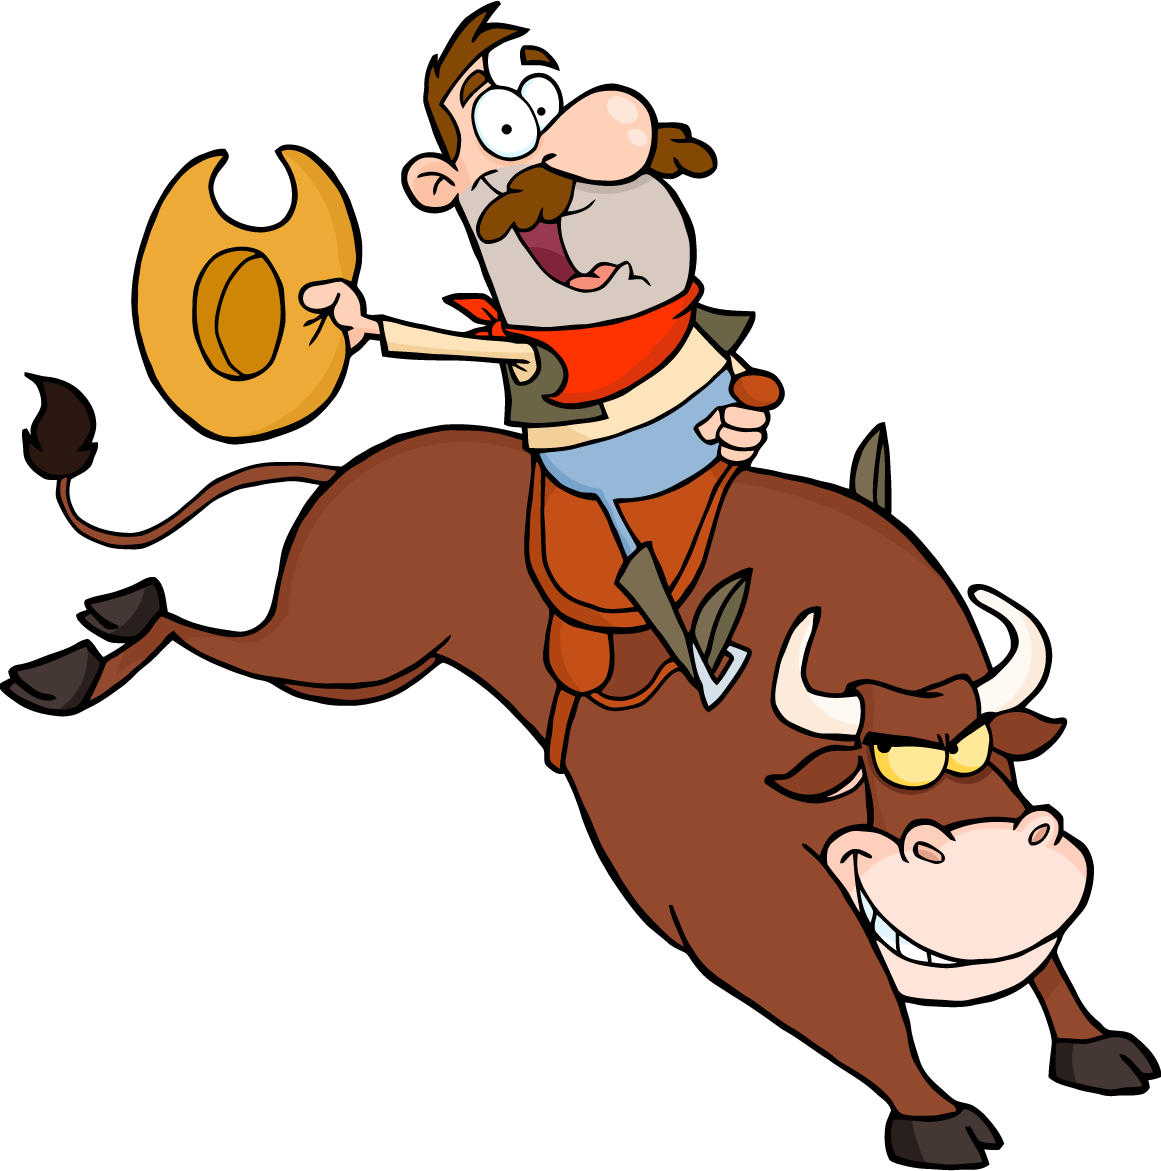 Wild West clipart rodeo Clipart Clipartion Clipart Rodeo Image